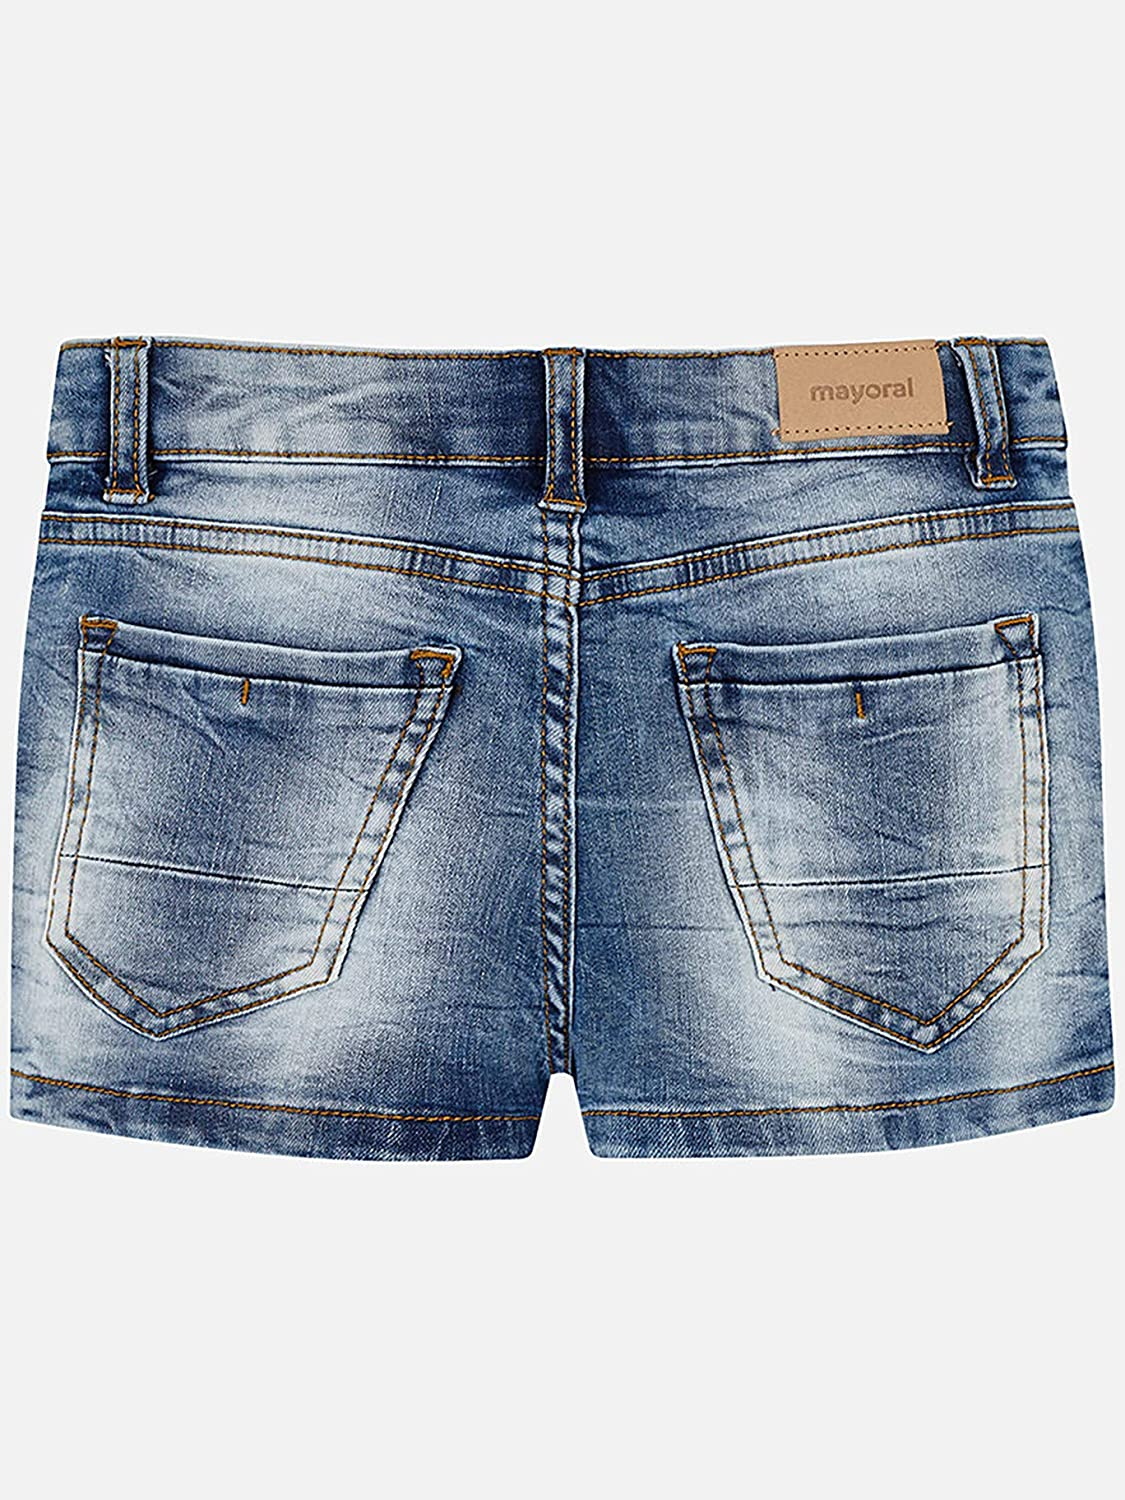 Fille 0235Clair Short Basic Mayoral Jean Pour fbg76yY